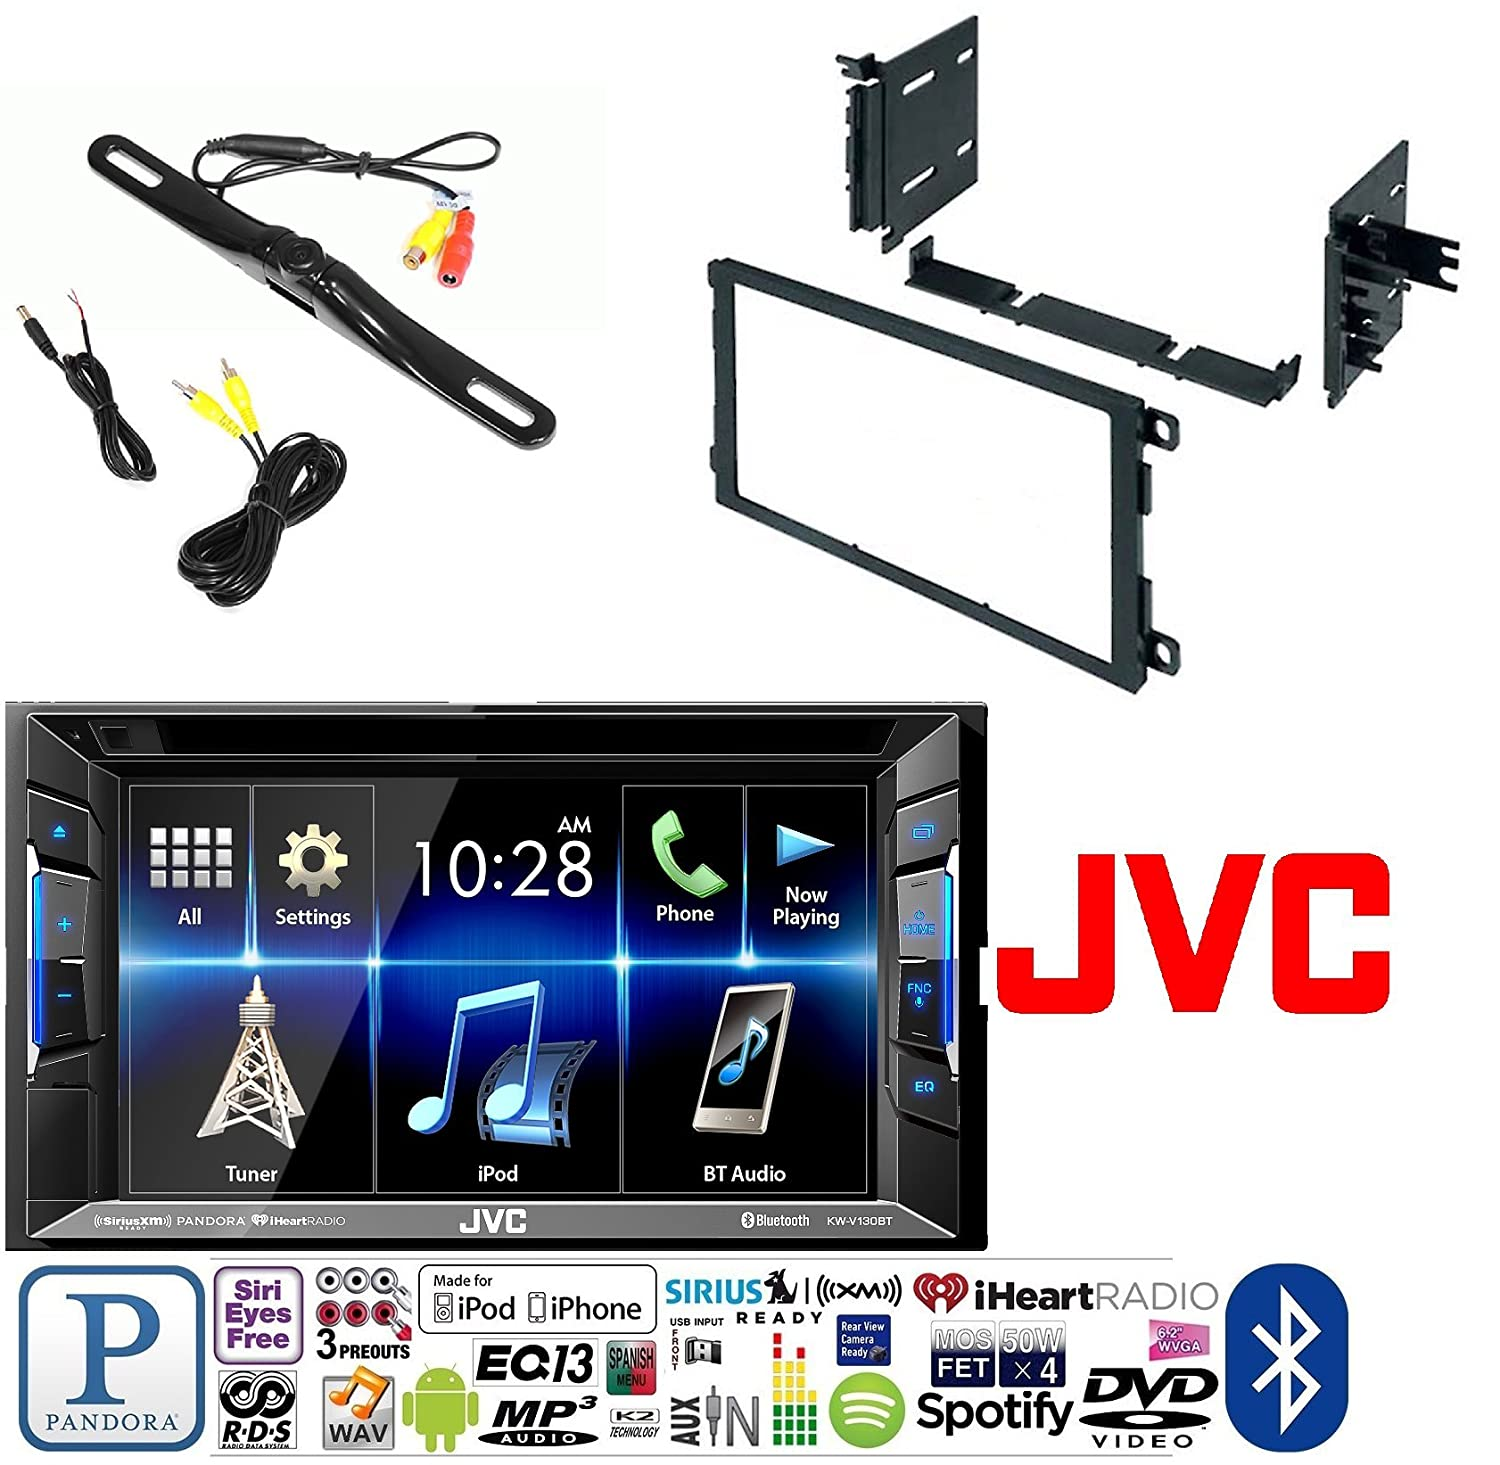 Jvc Kw V130bt Double Din Bluetooth In Dash Dvd Cd Am Fm Chevy Sonic Stereo Wiring Diagram Chimes And Speakers Not Working Car W 2001 2012 Silverado Tahoe Suburban 2 Kit Rear View